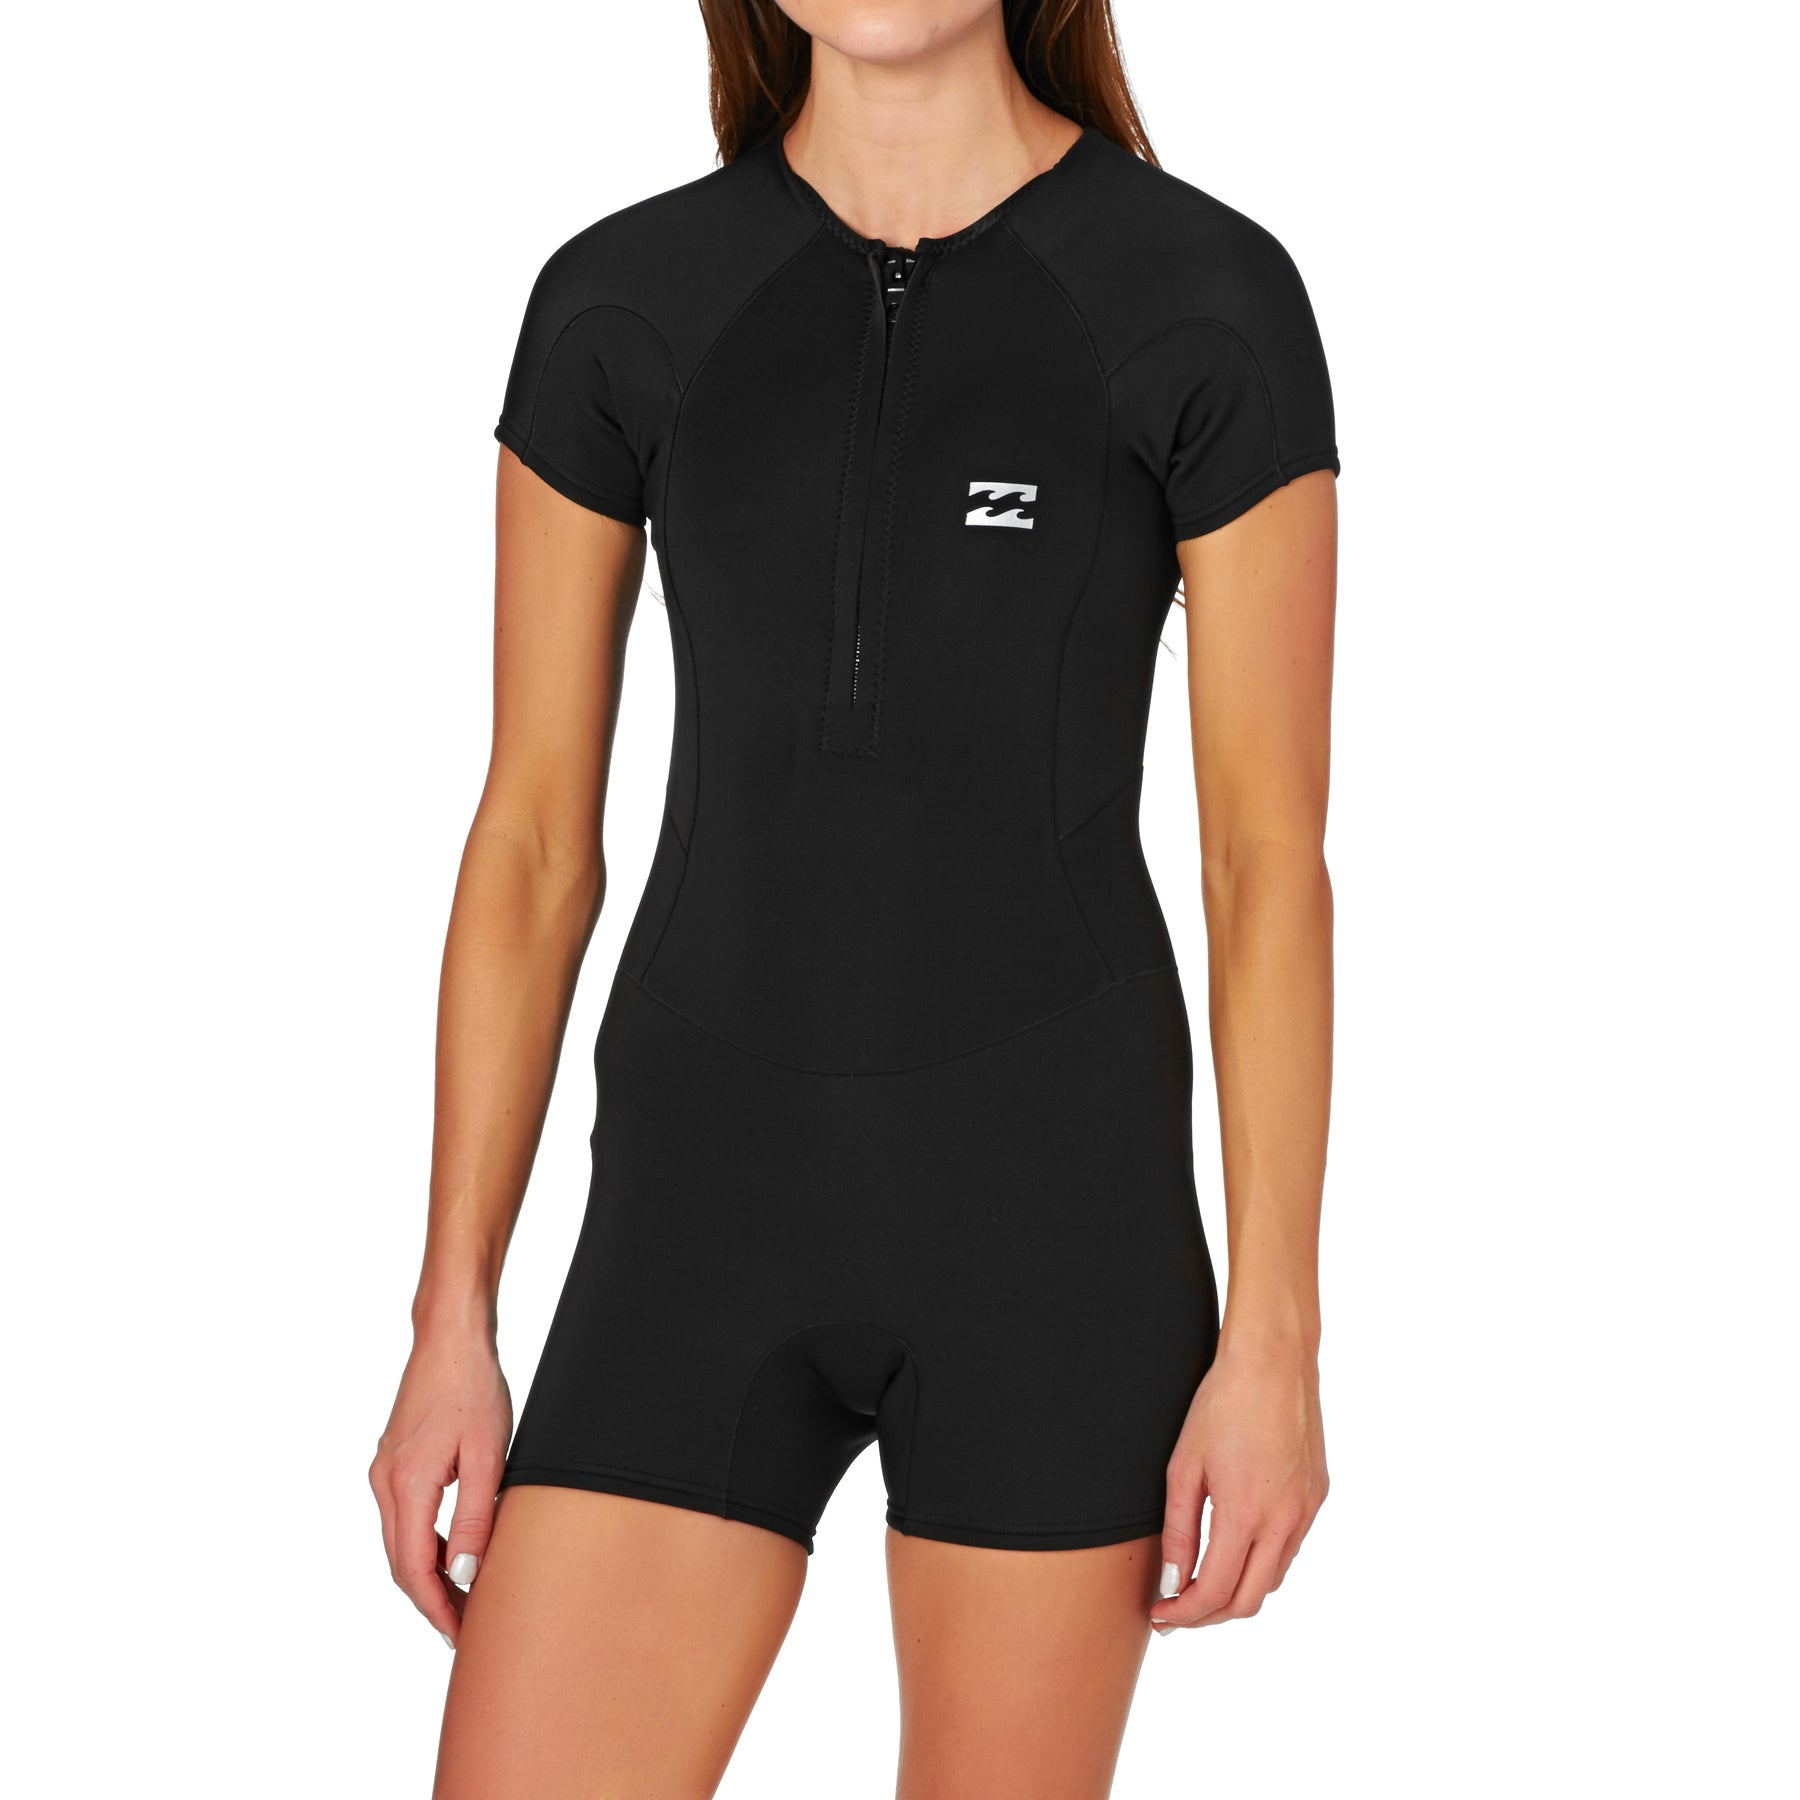 Billabong Synergy 1mm 2017 Front Zip Shorty Womens Wetsuit - Black